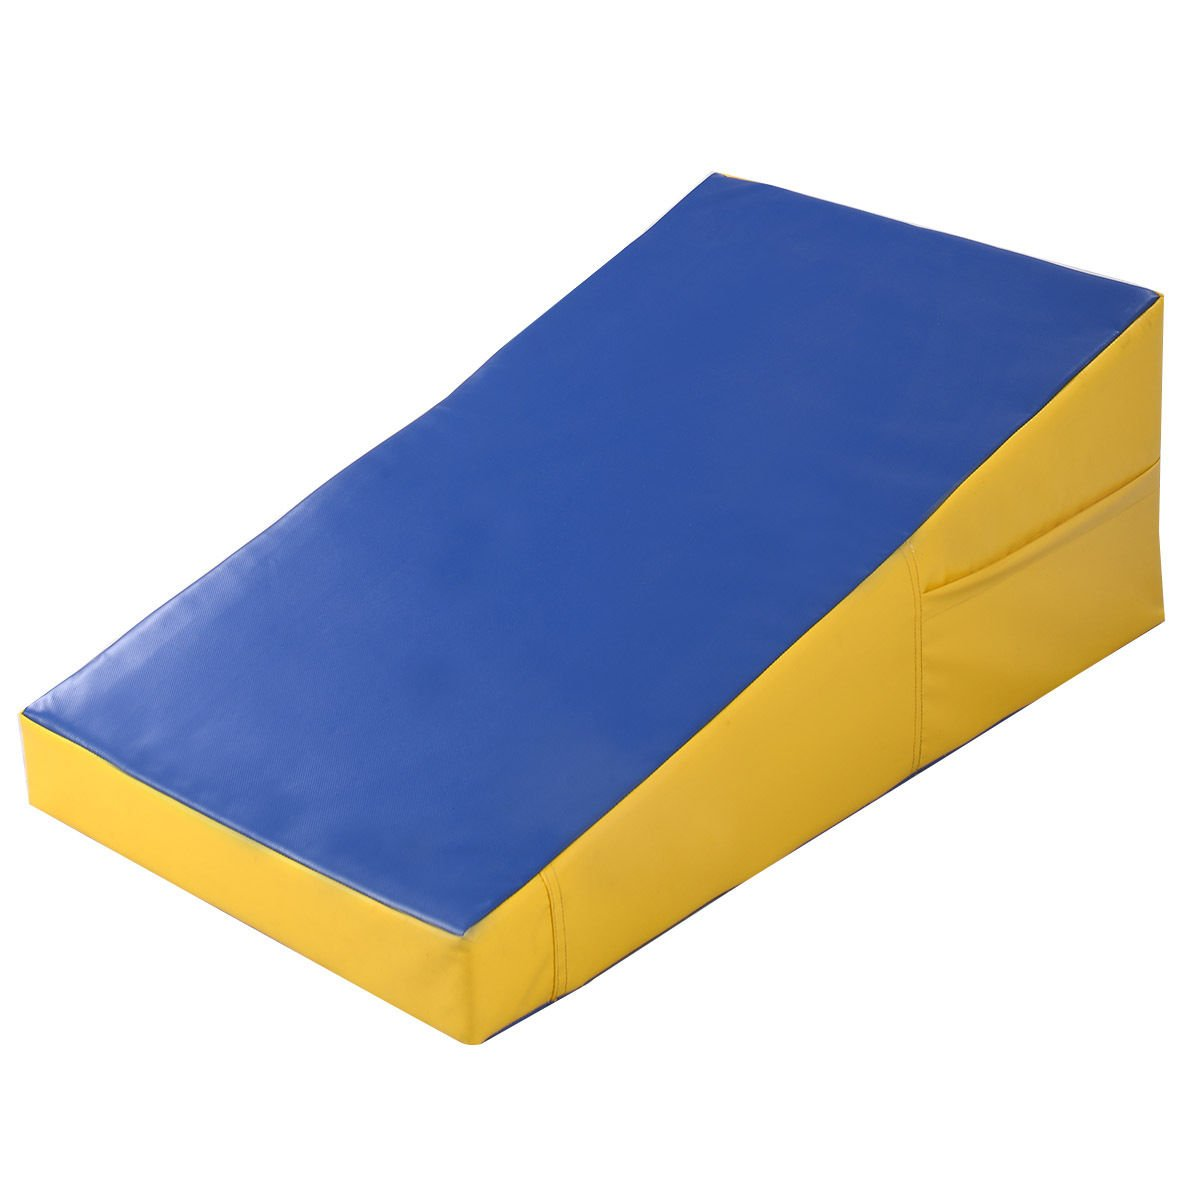 horizontal tumbling mats cannons gymnastics bars big gym collections uk